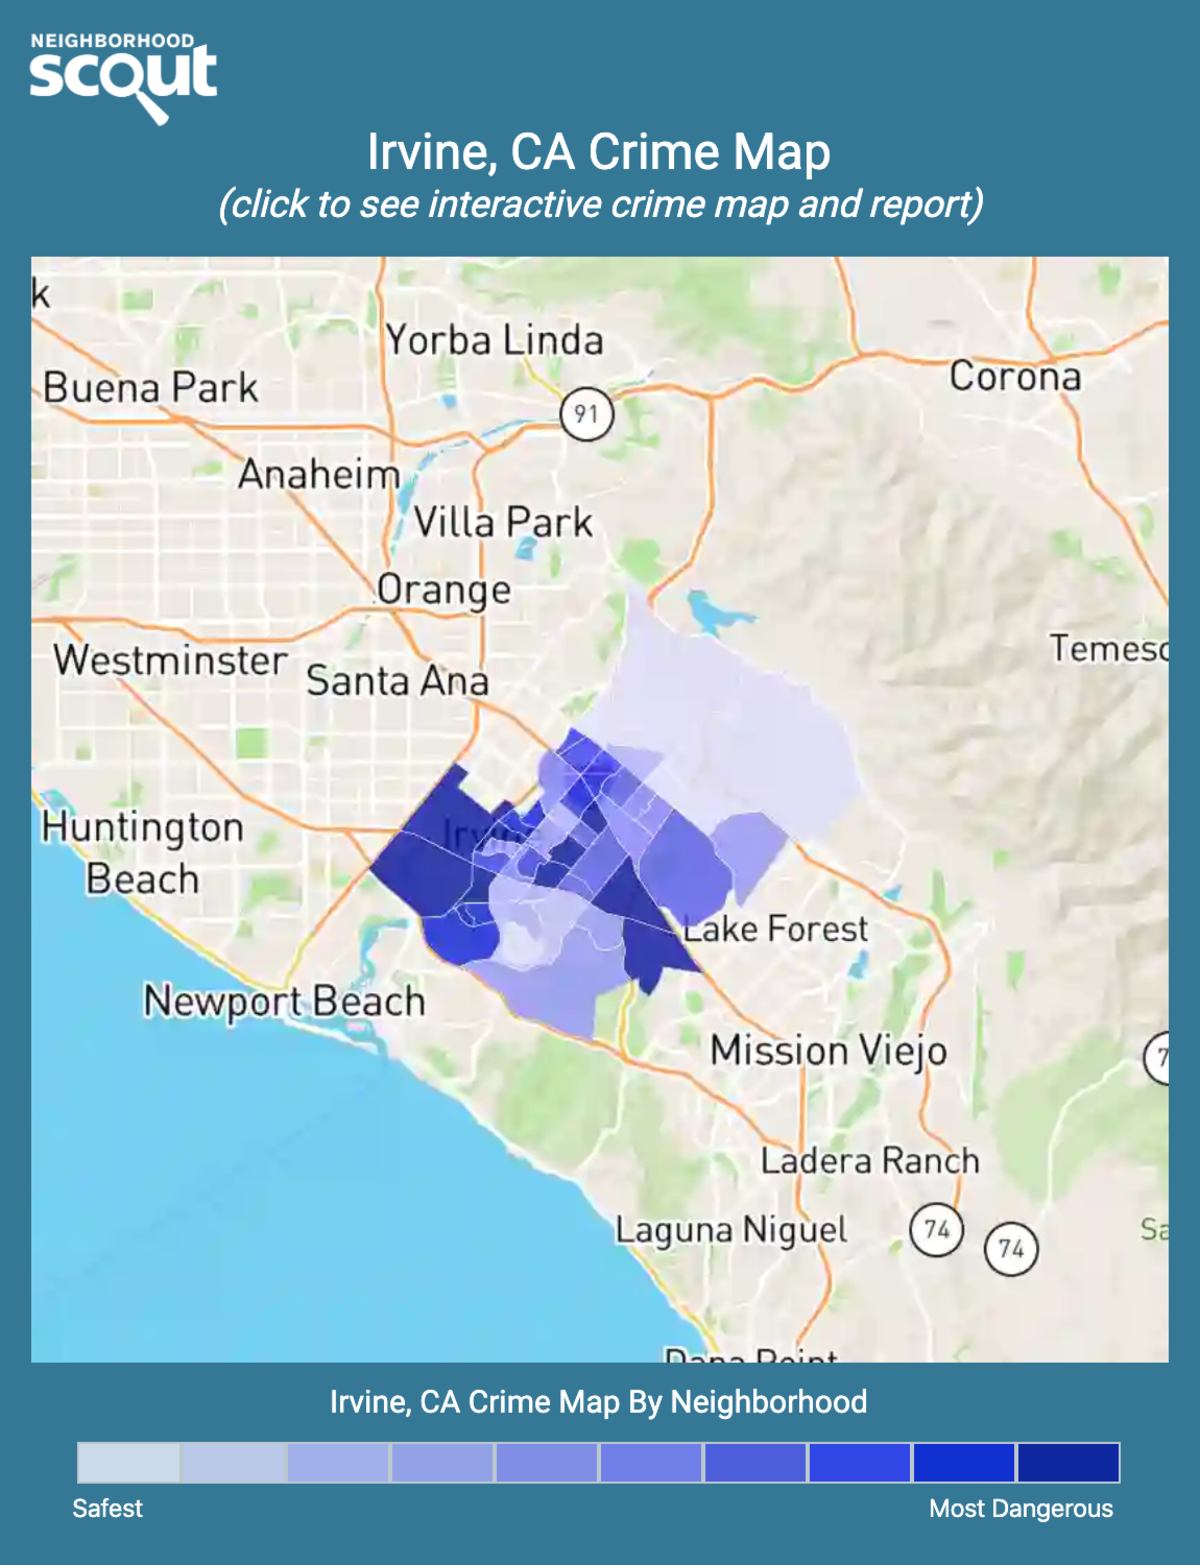 Irvine, California crime map